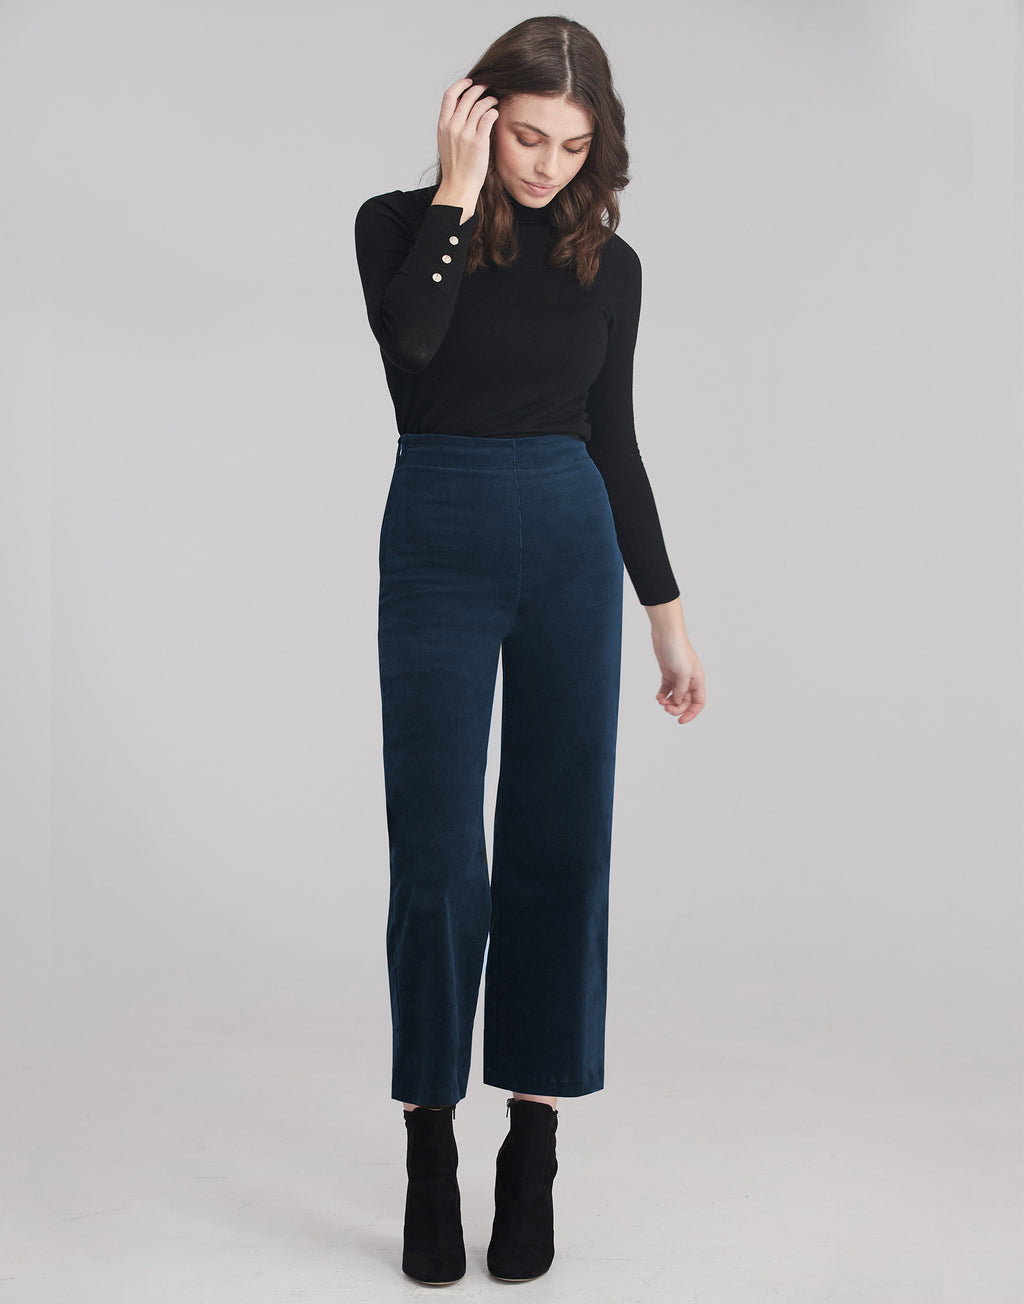 CORDS by YOGA JEANS